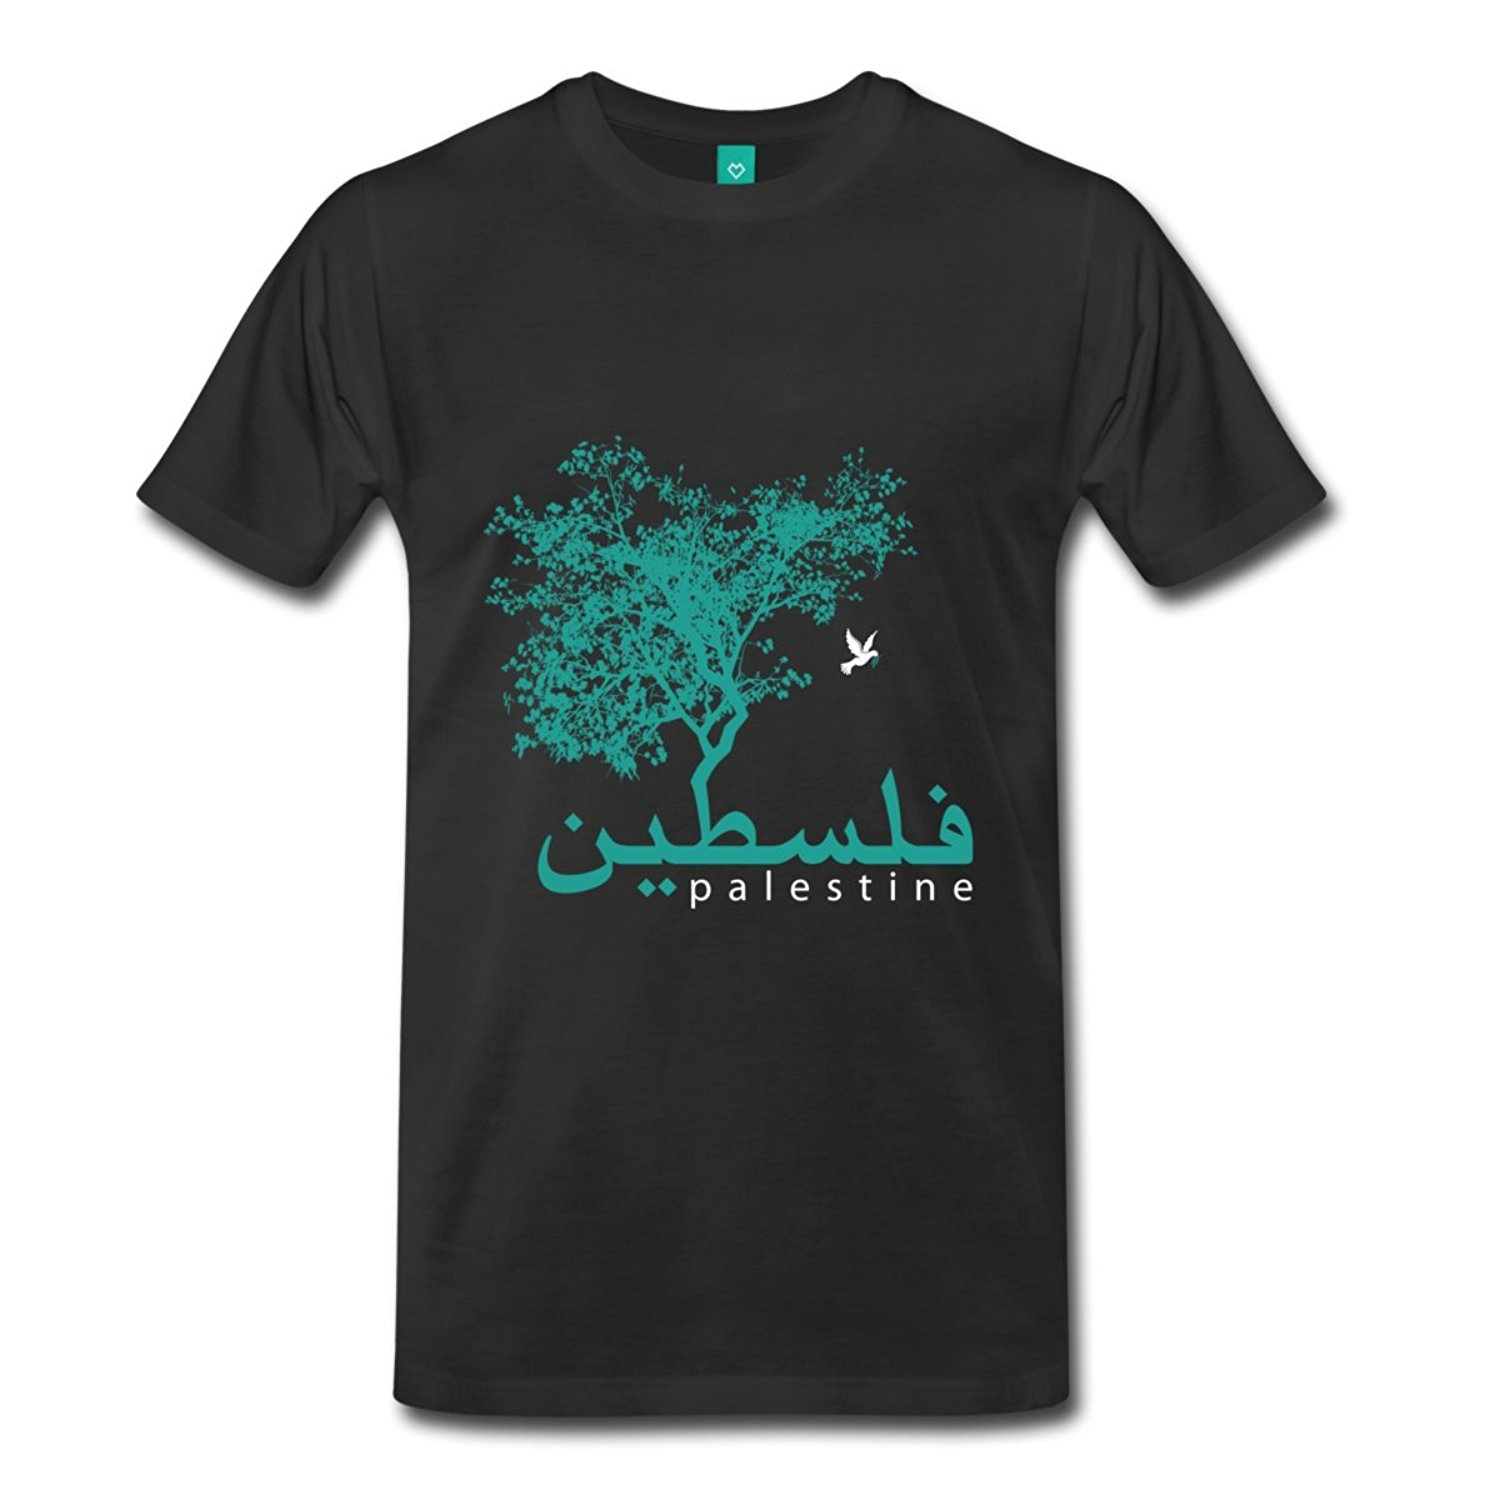 Online buy wholesale arabic tees from china arabic tees for Order custom t shirts cheap